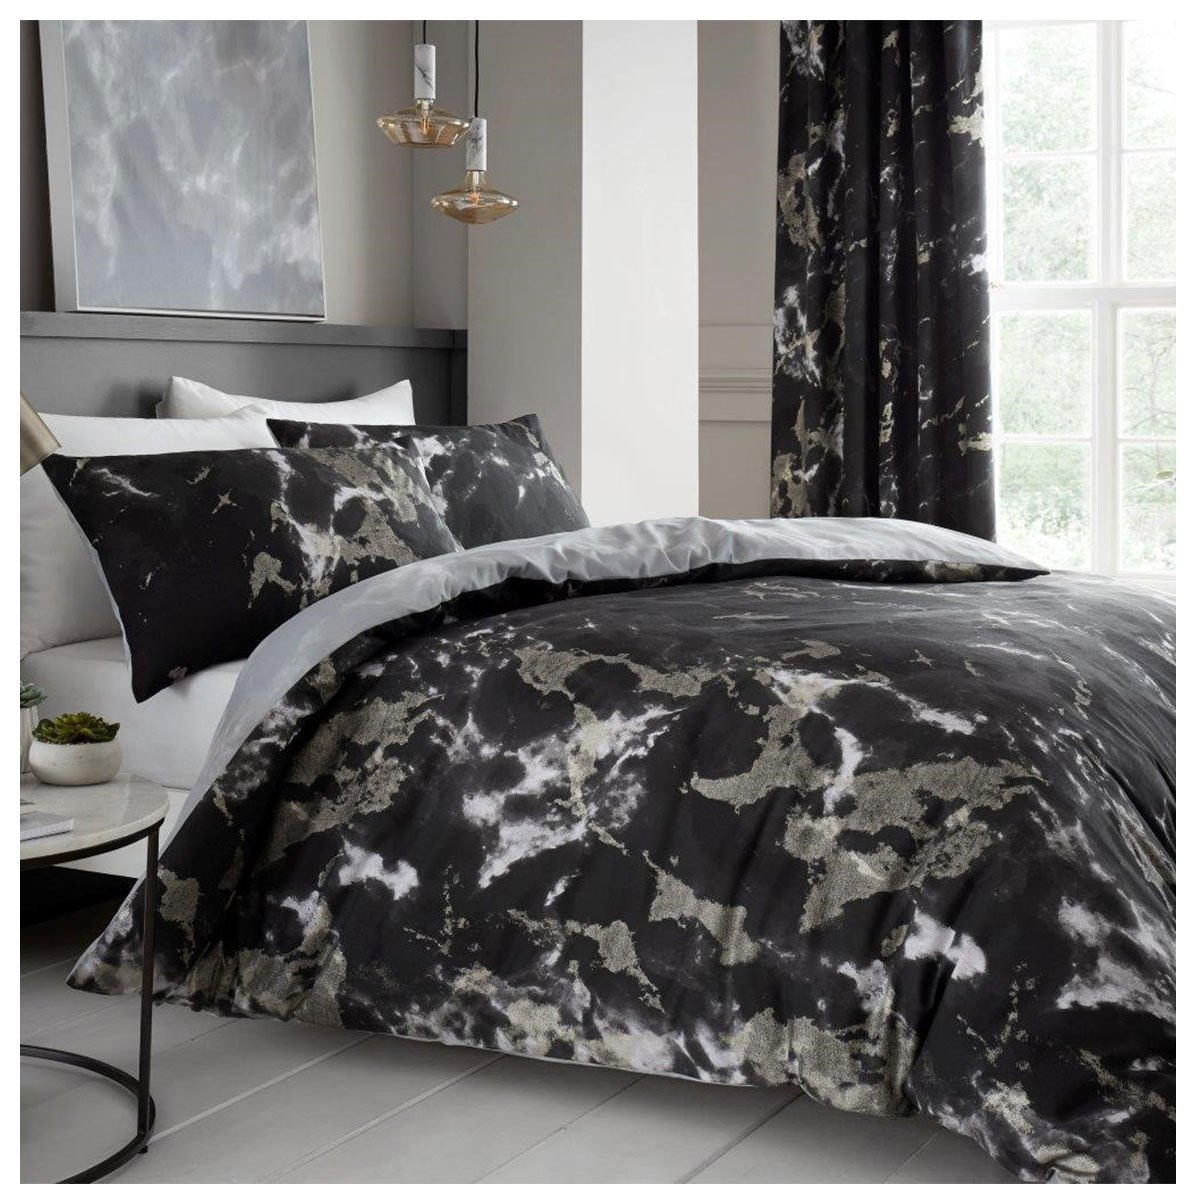 Comfy MARBLE Bed Set with Duvet Cover and Pillow Cases, Polyester-Cotton, Black, Double Gaveno Cavailia 11150732